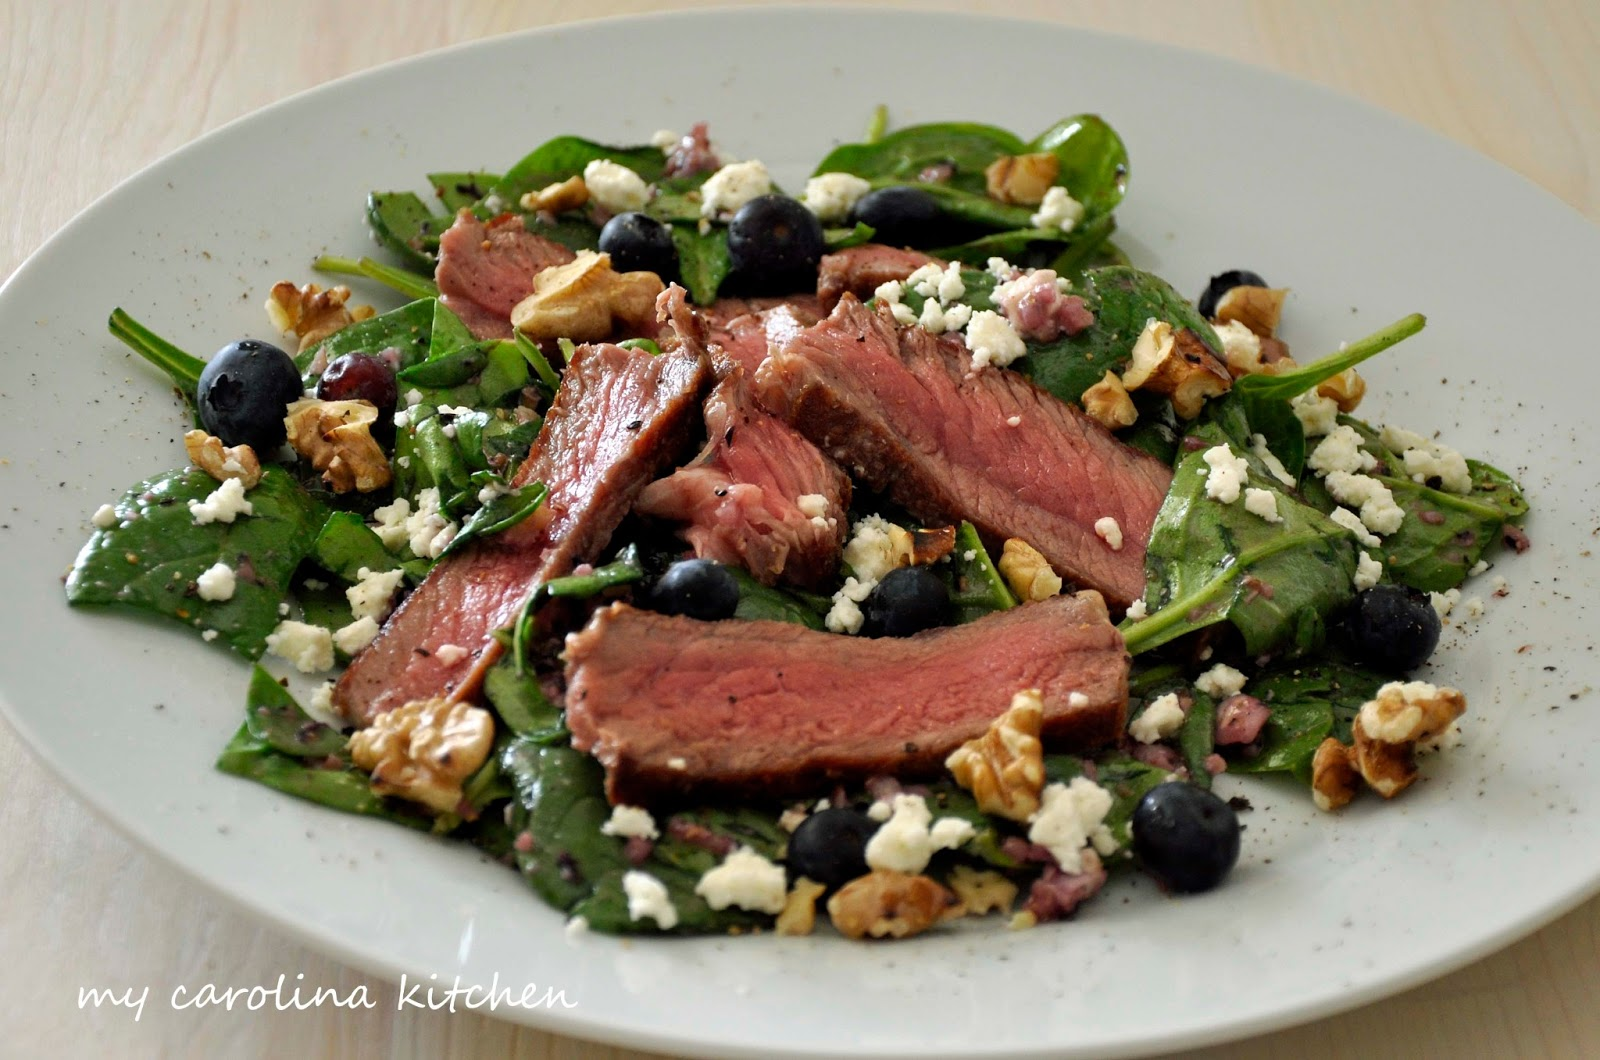 My Carolina Kitchen: Steak Salad with Spinach, Blueberries ...